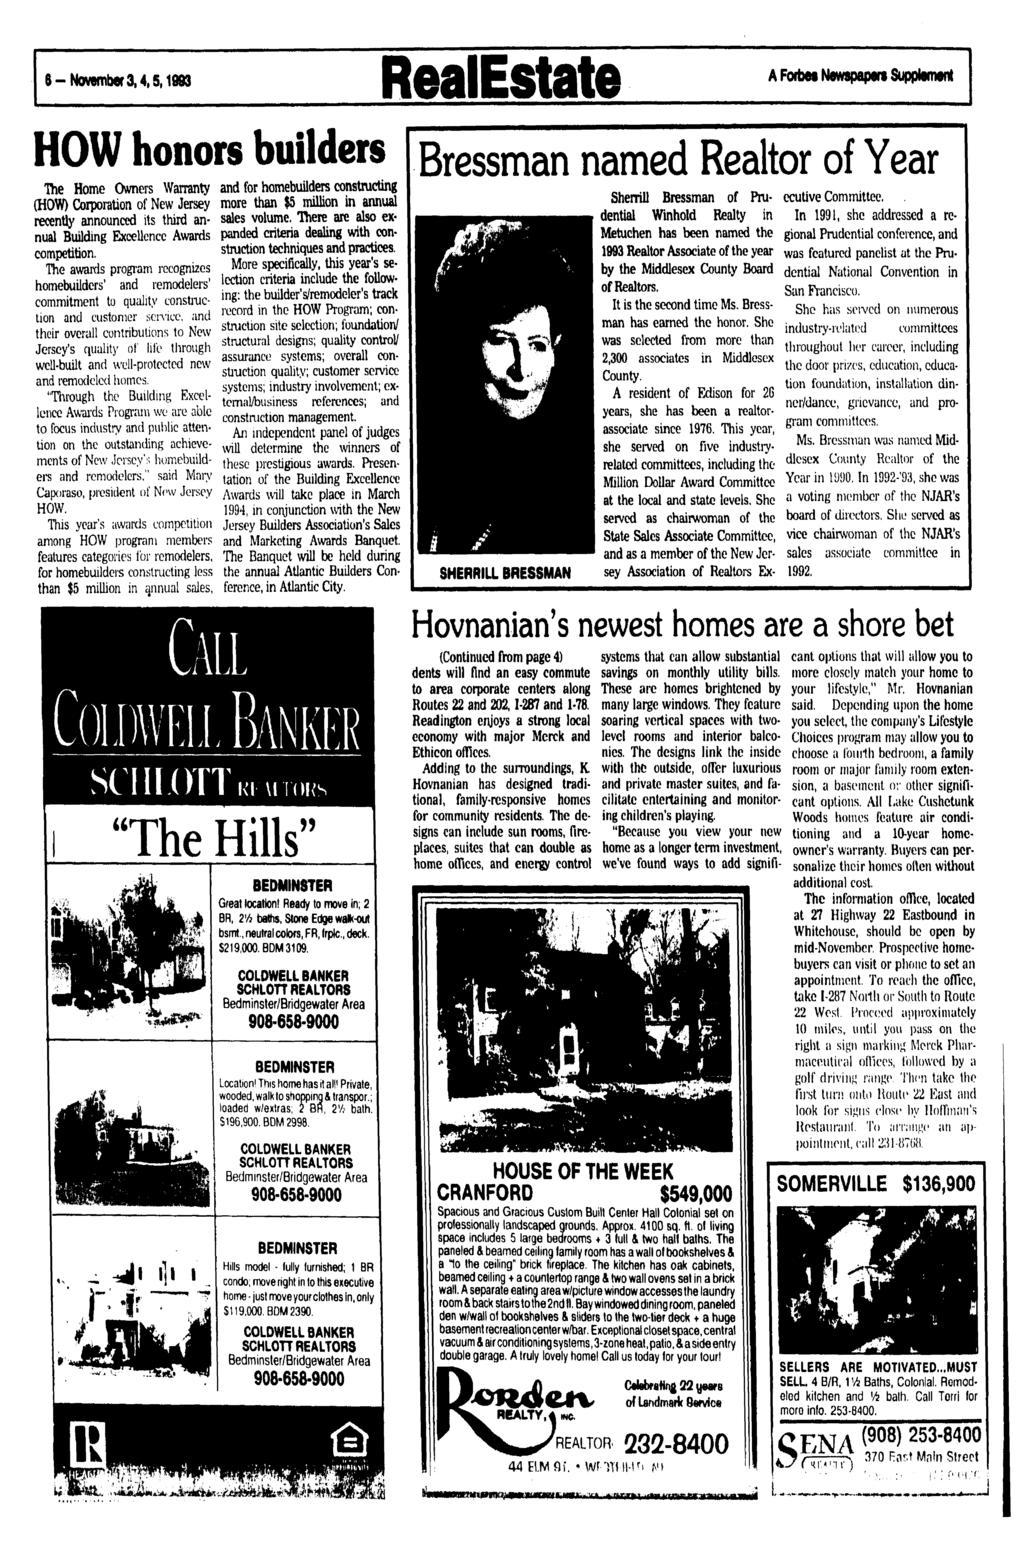 &-November 3,4,5,1993 RealEstate A Forte Newspapers Supplement HOW honors builders The Home Owners Warranty (HOW) Corporation of New Jersey recently announced its third annual Building Excellence